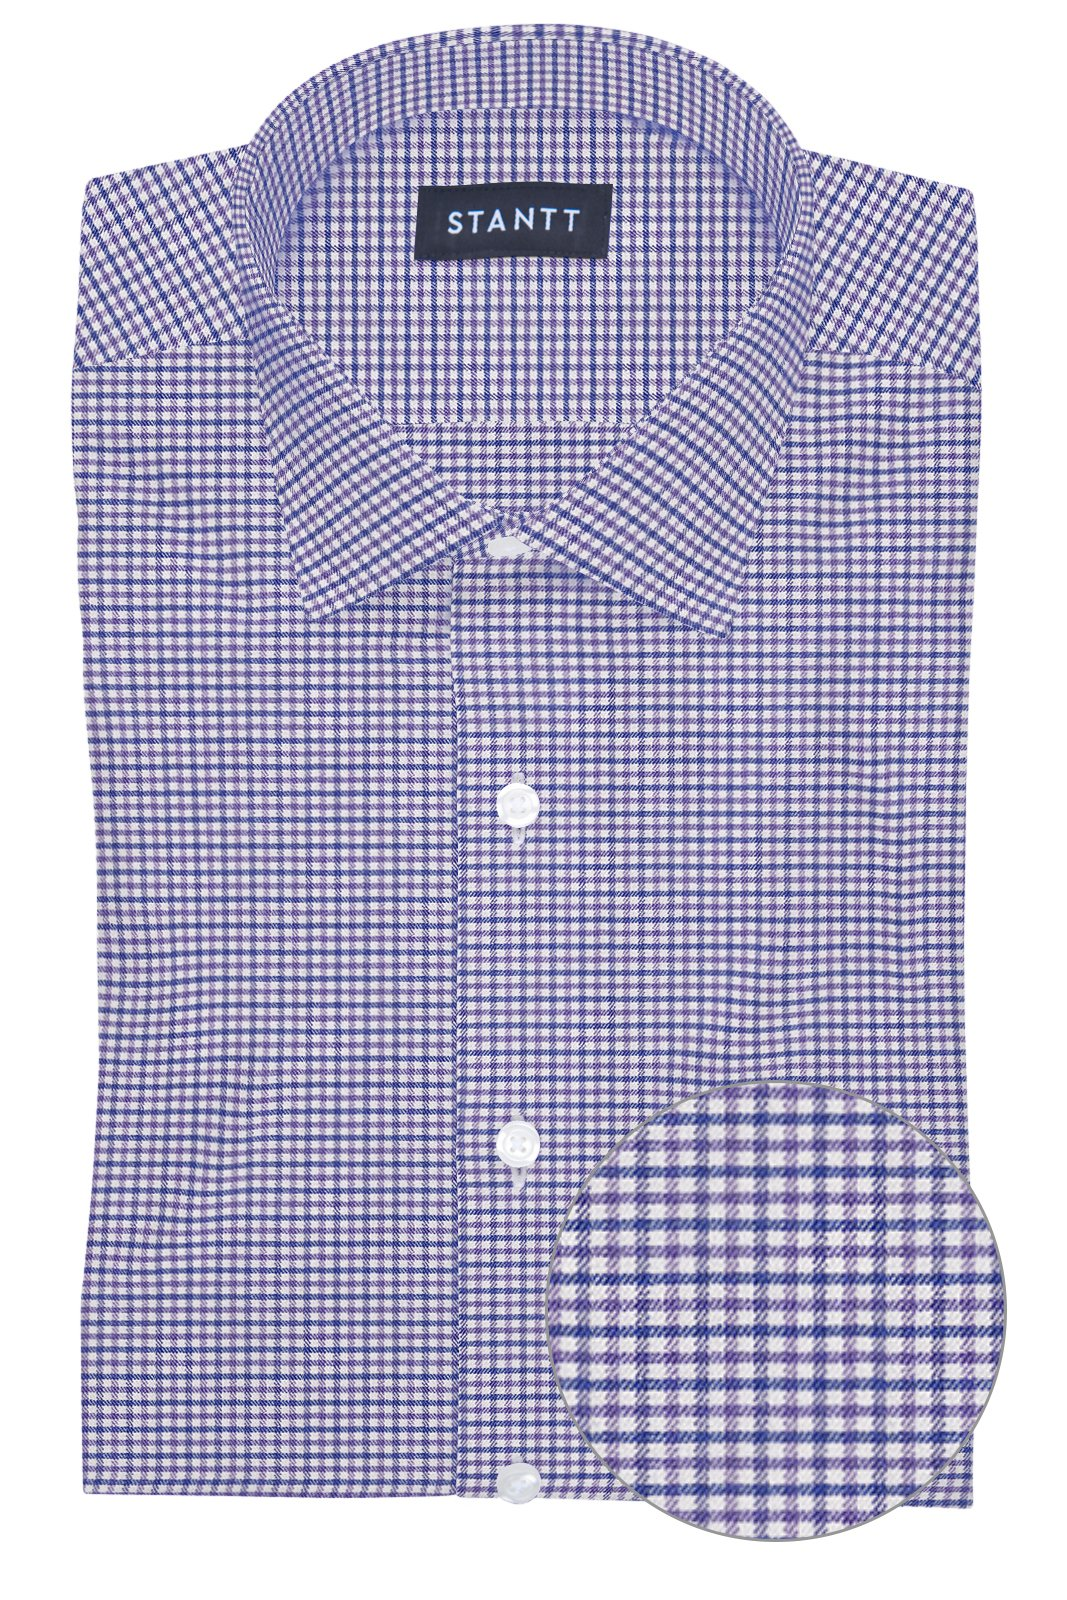 Performance Purple and Blue Mini Gingham: Modified-Spread Collar, Barrel Cuff